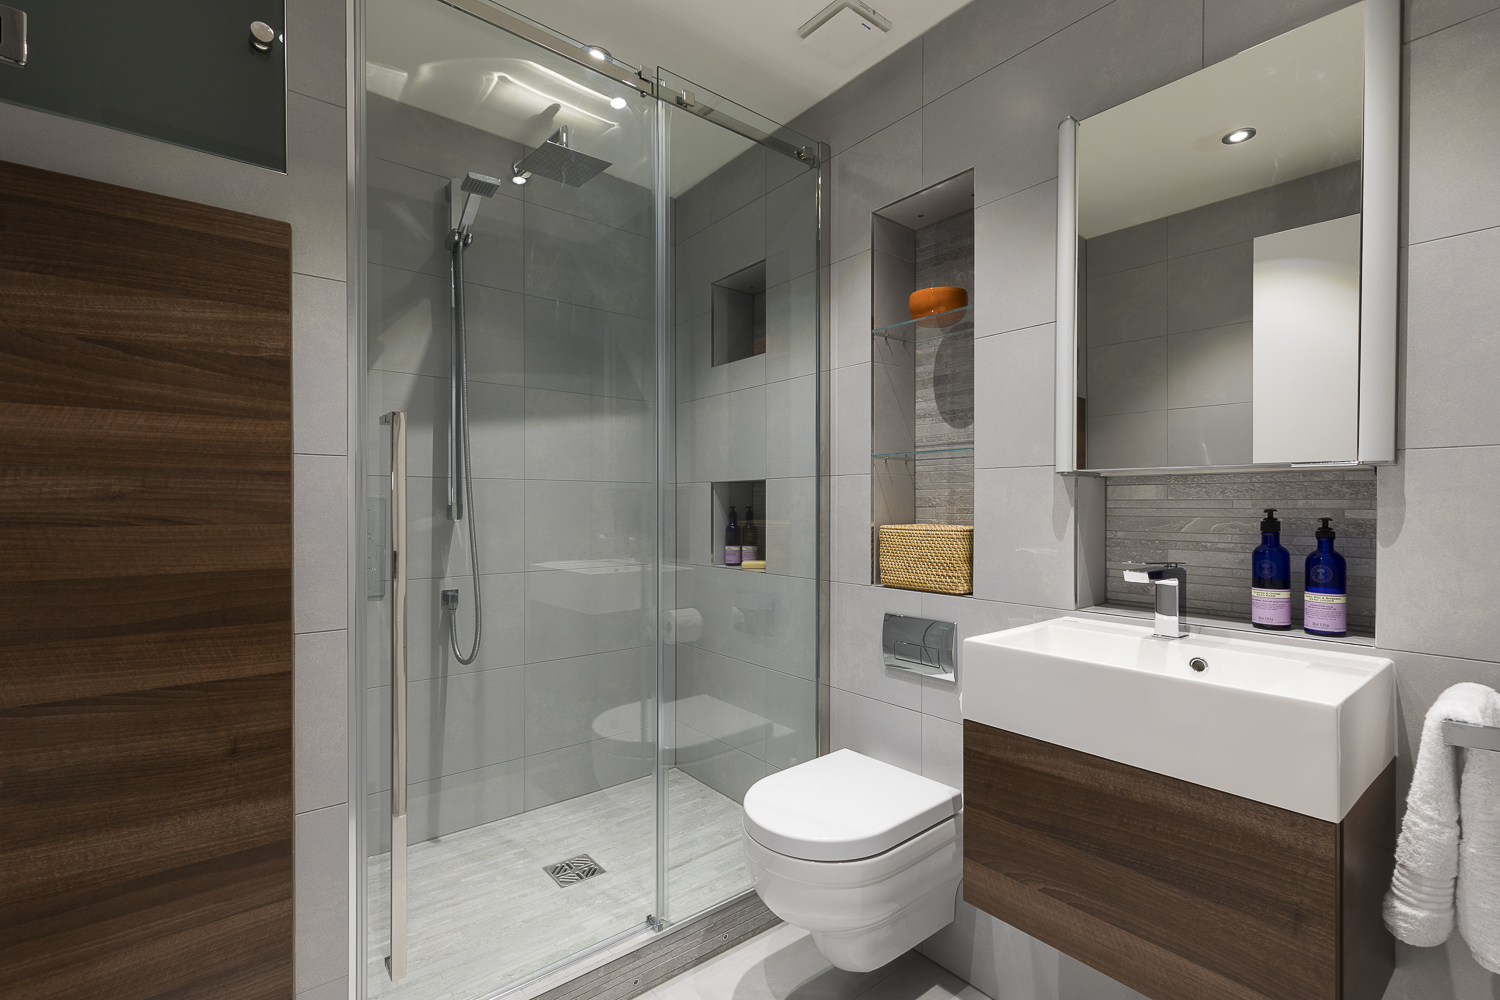 Luxury bathroom design and affordable prices